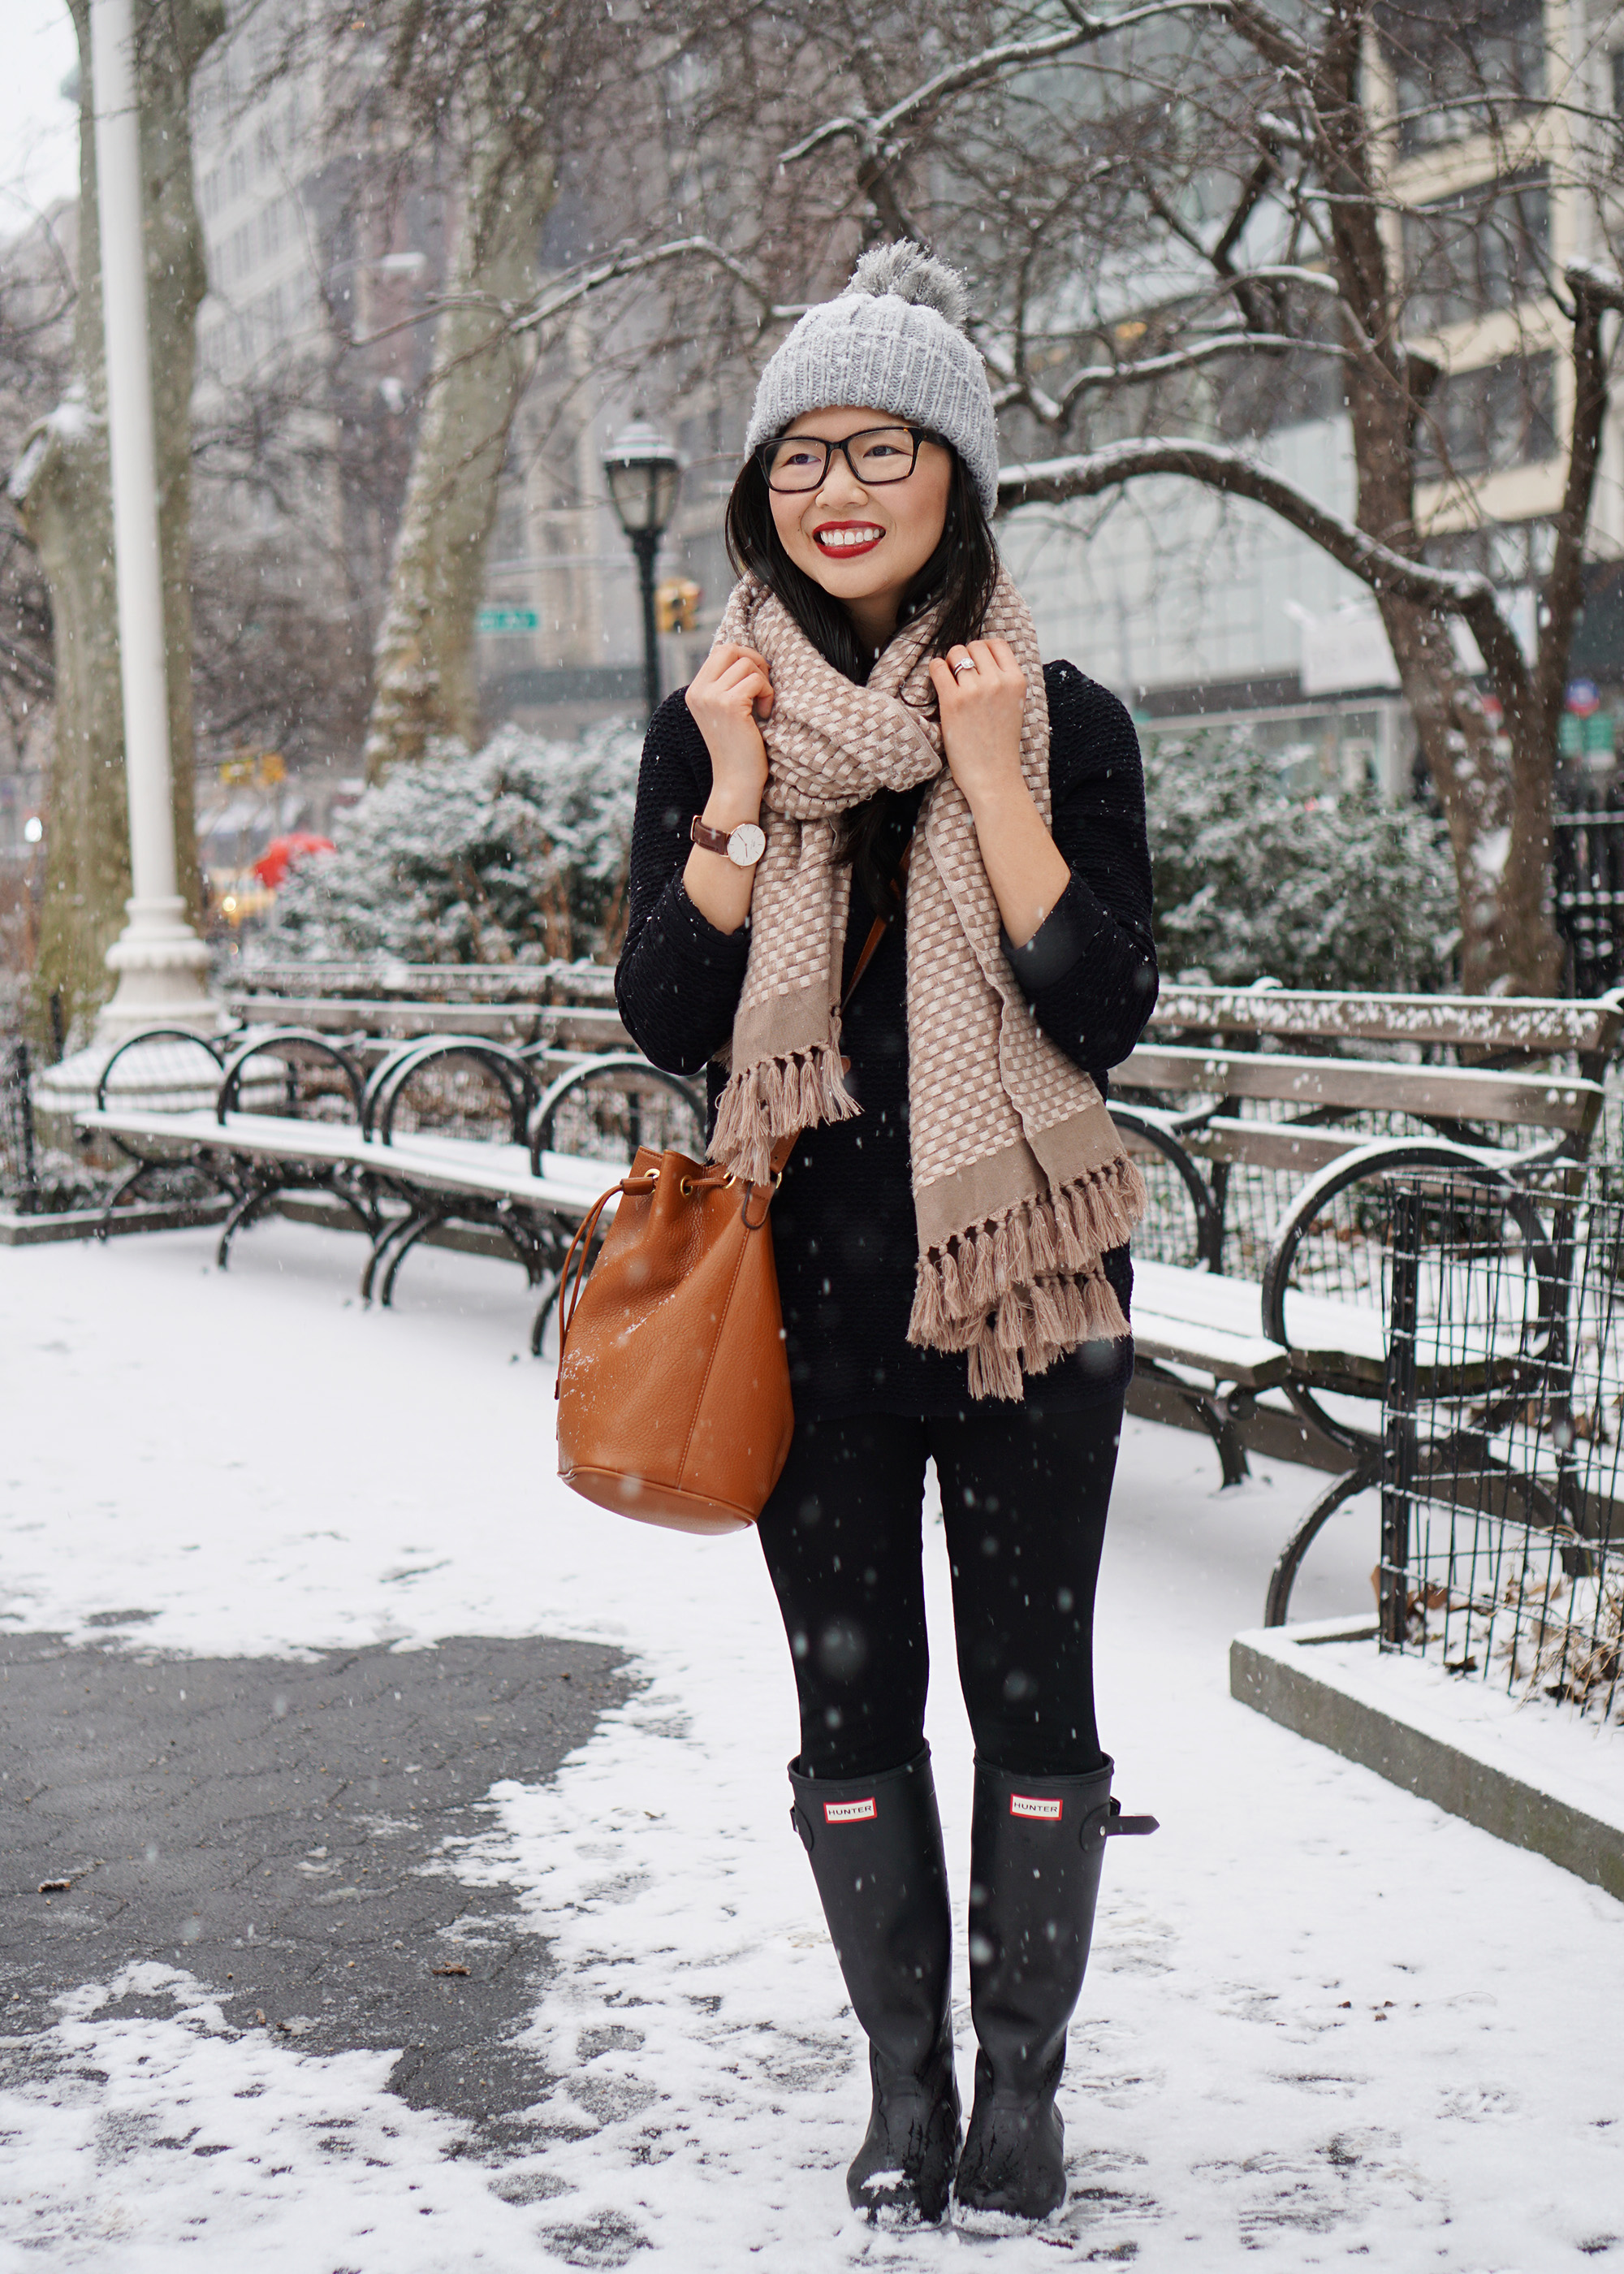 Casual Snow Day Outfit Skirt The Rules Life Amp Style In Nyc